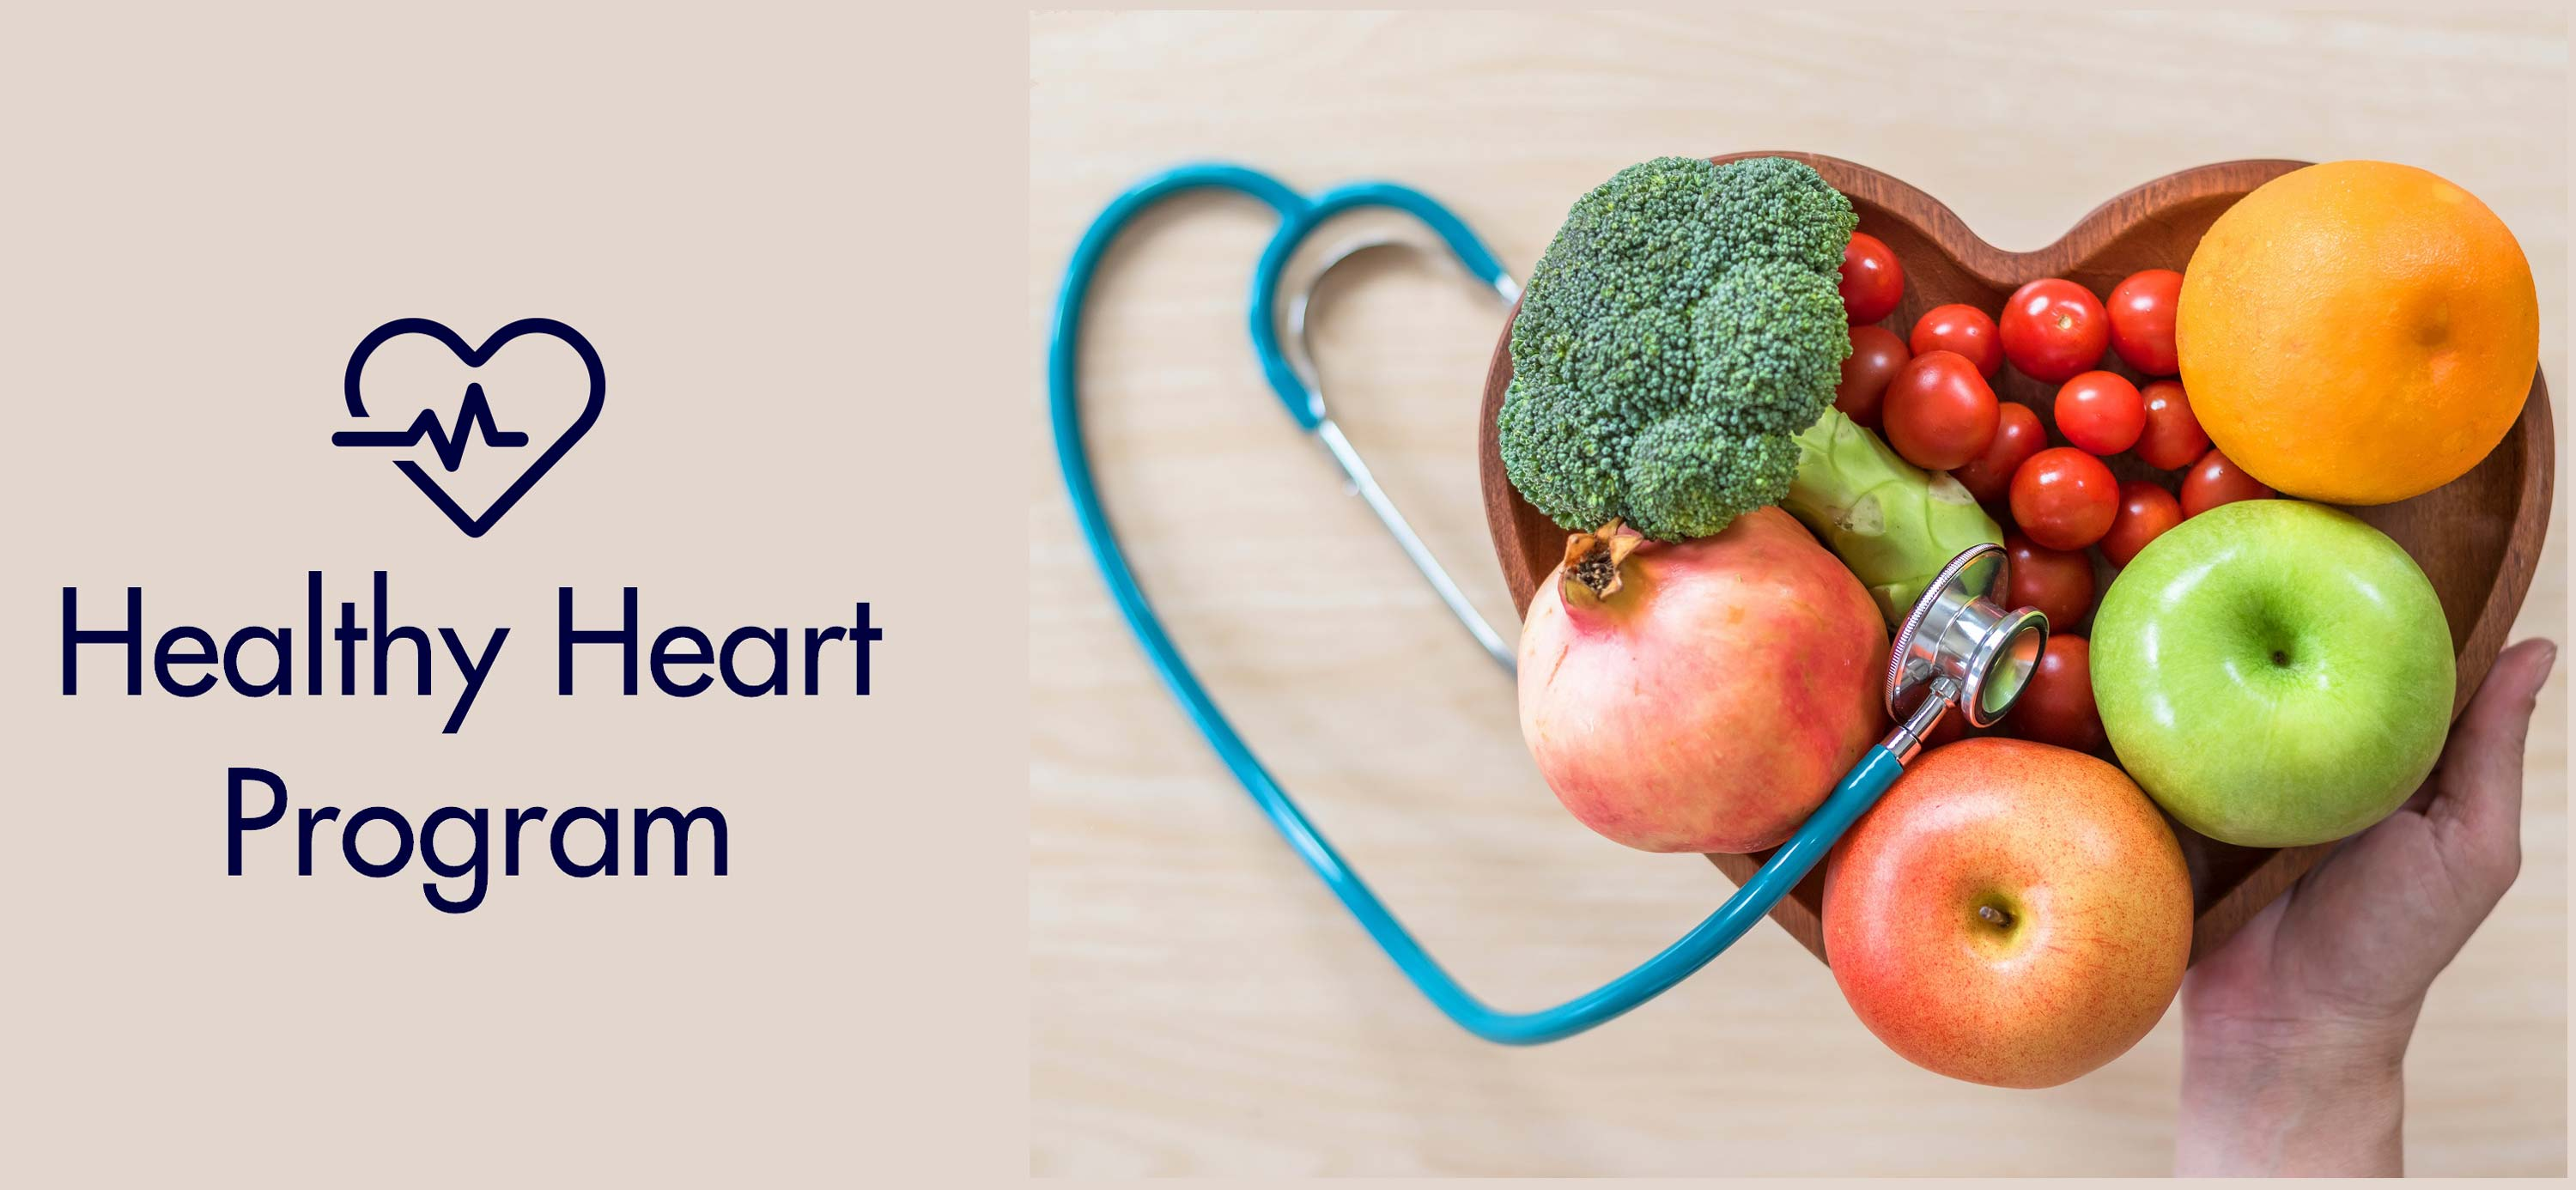 does diet have to do with heart disease